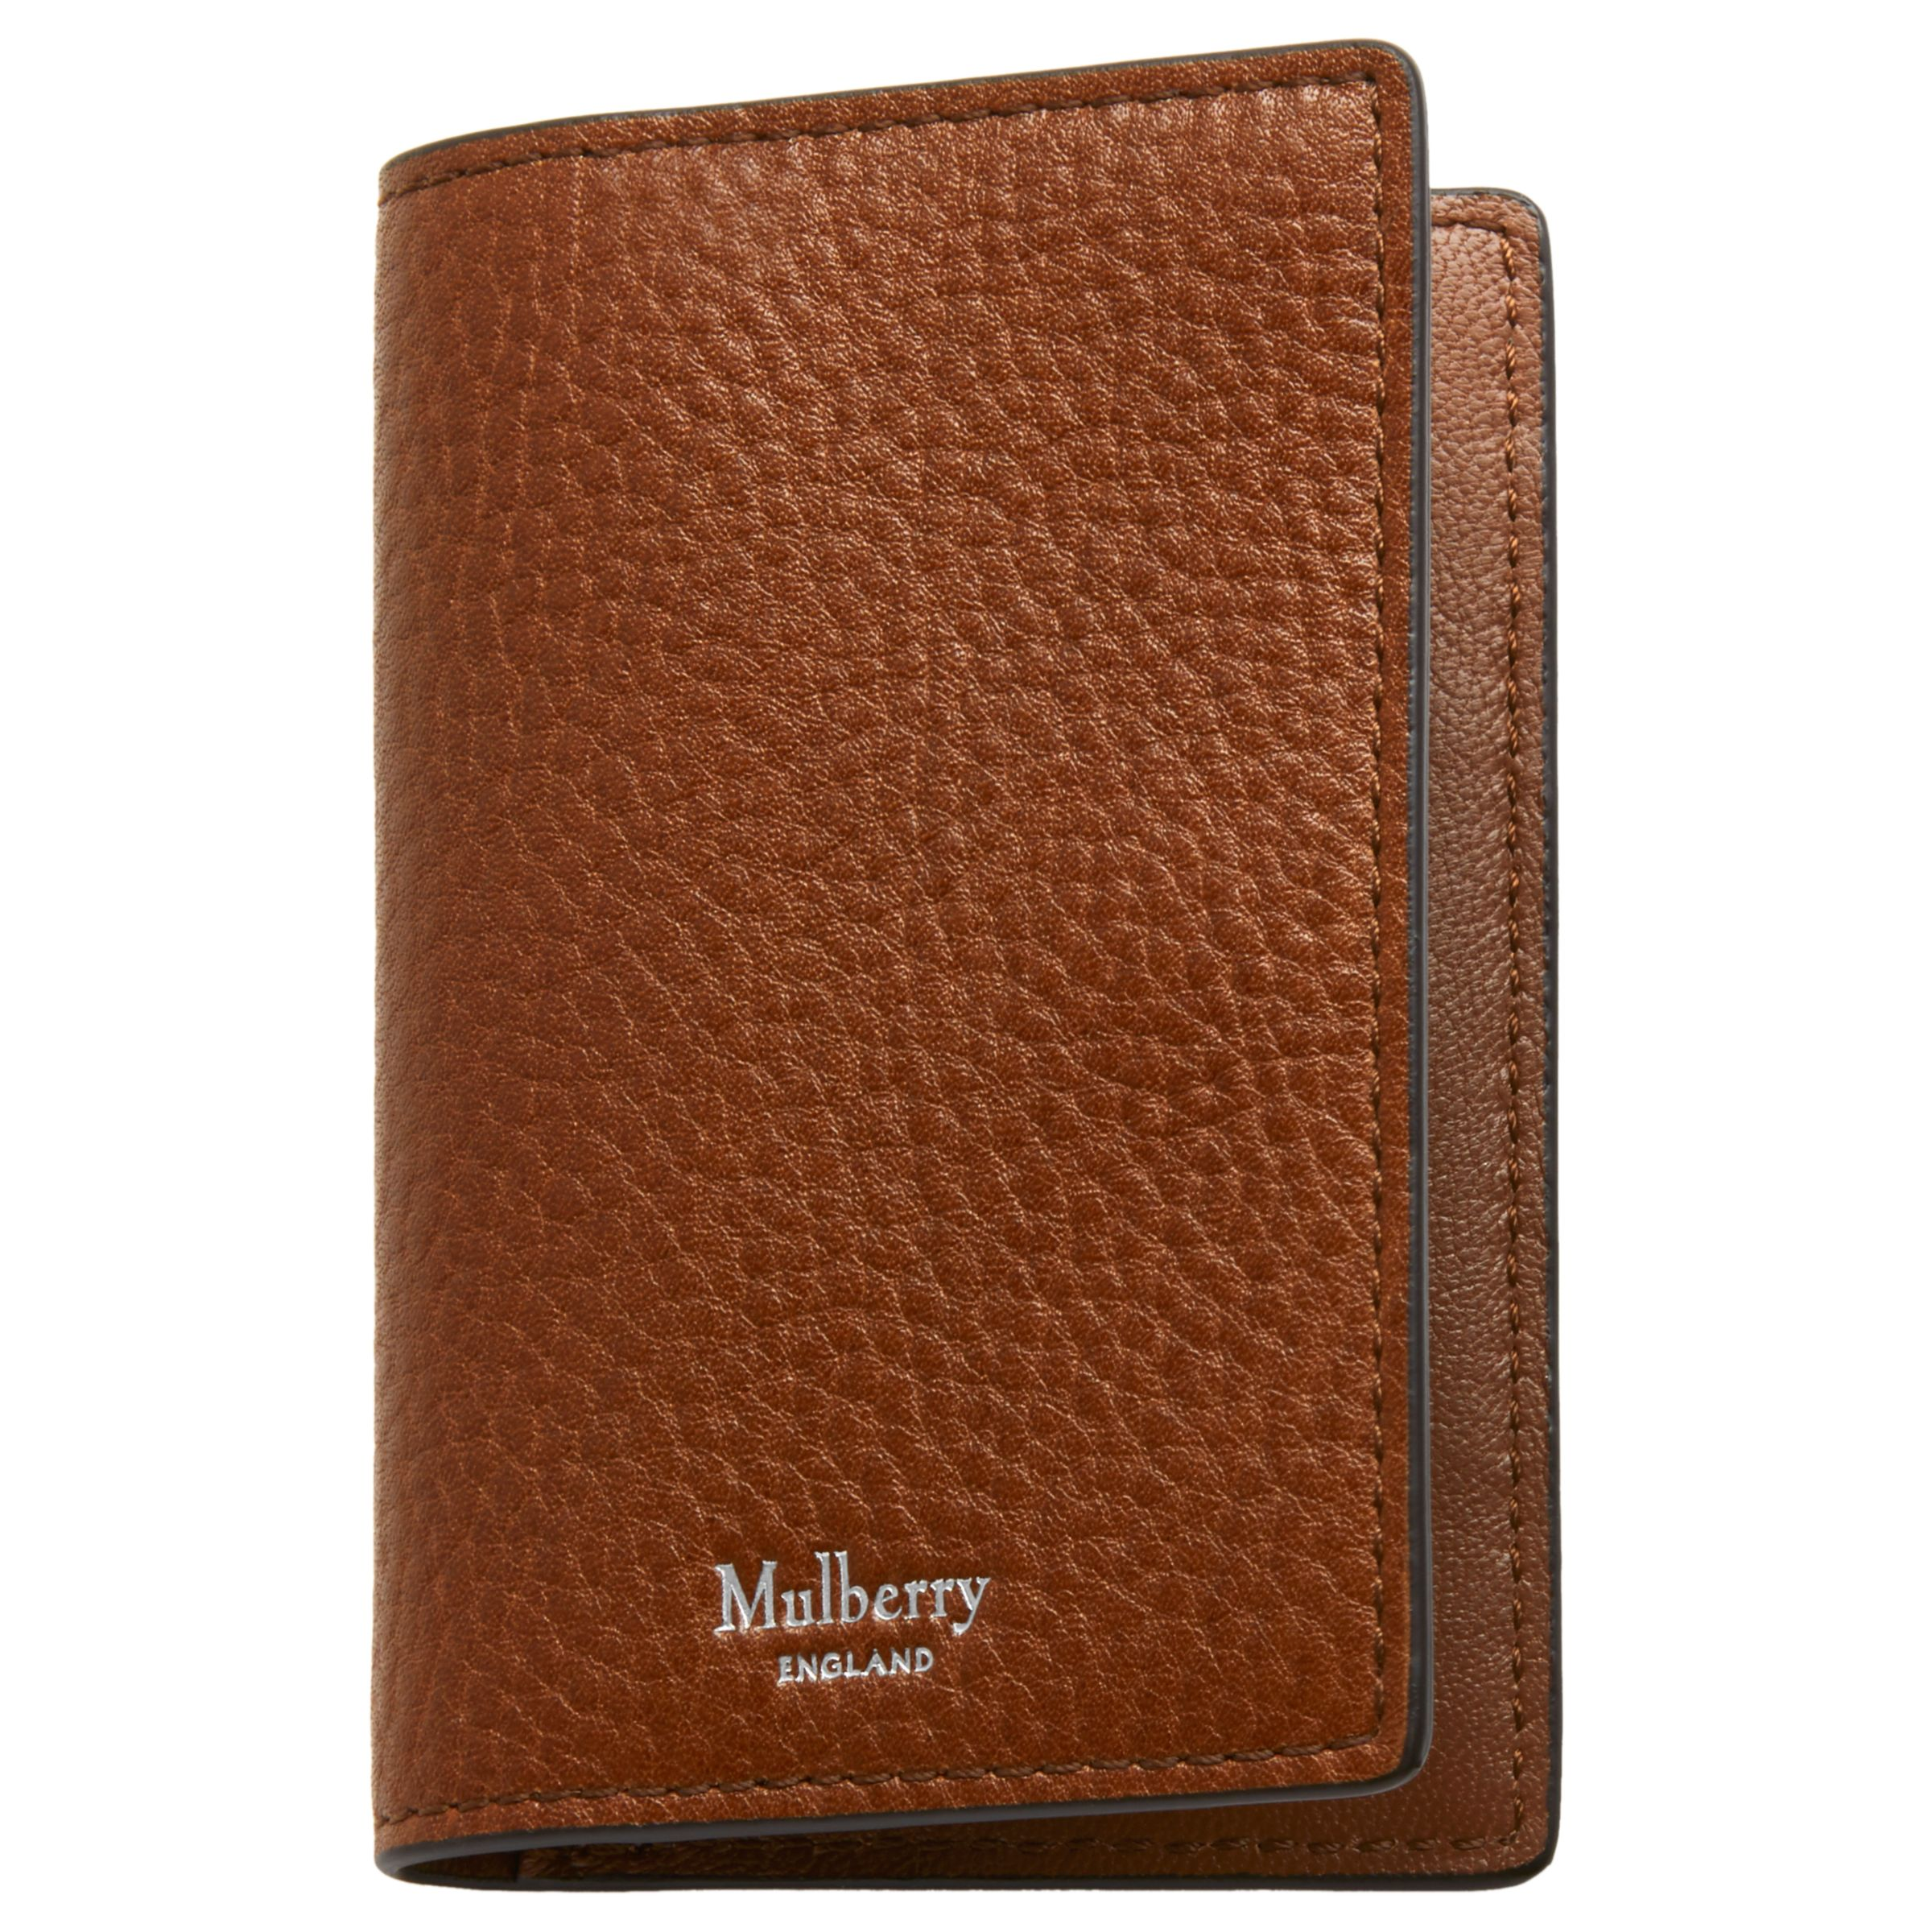 76675a3dbdb9 Mulberry Leather Card Case at John Lewis   Partners